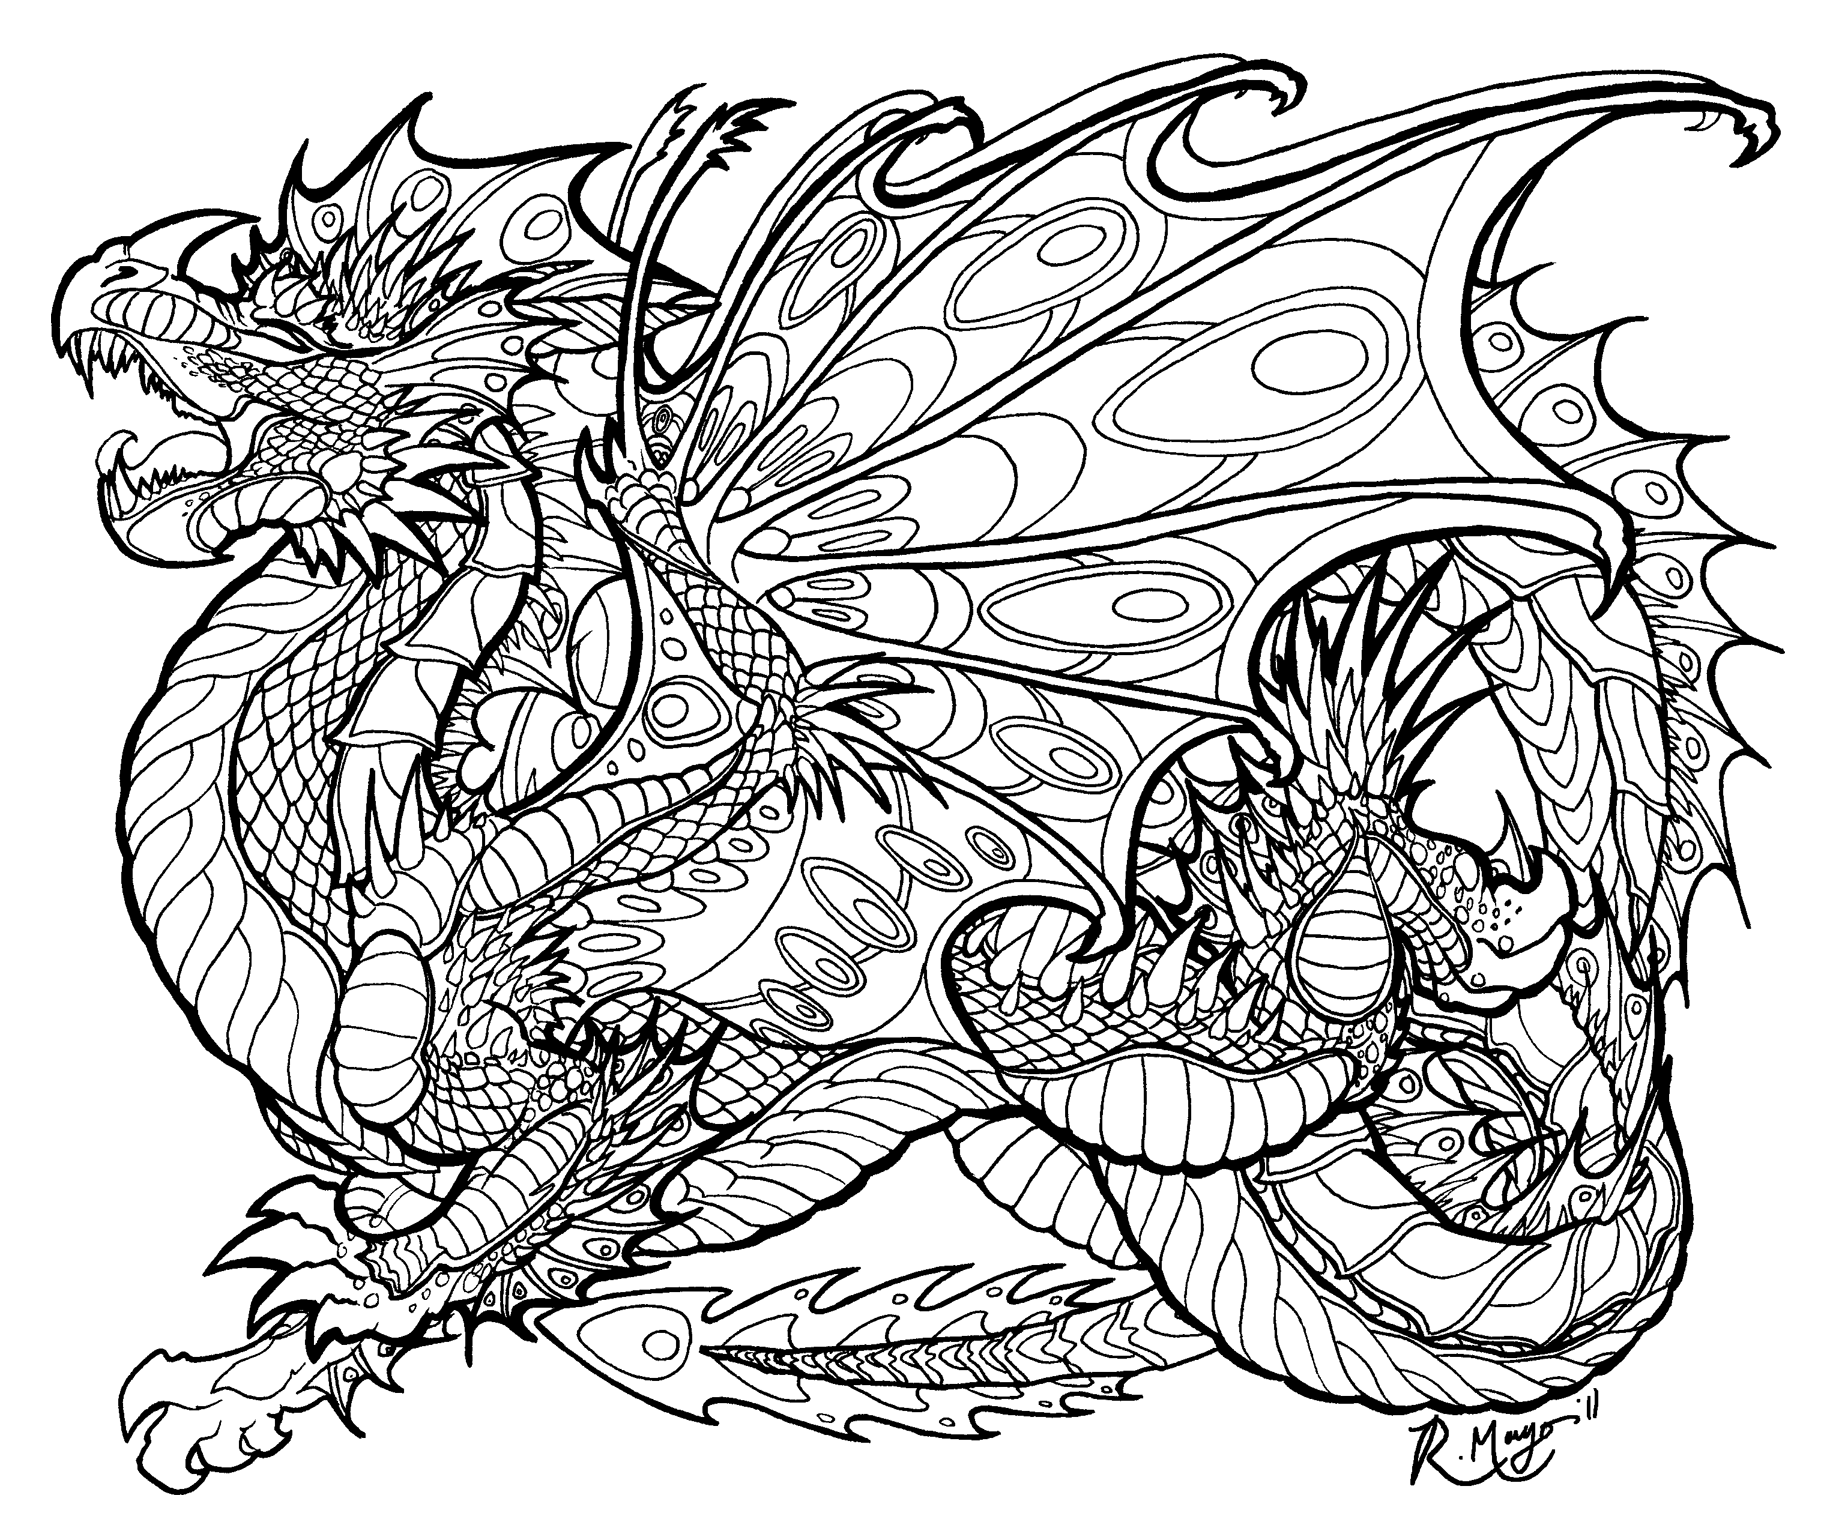 dragon coloring page coloring pages for adults difficult dragons at getdrawings coloring page dragon